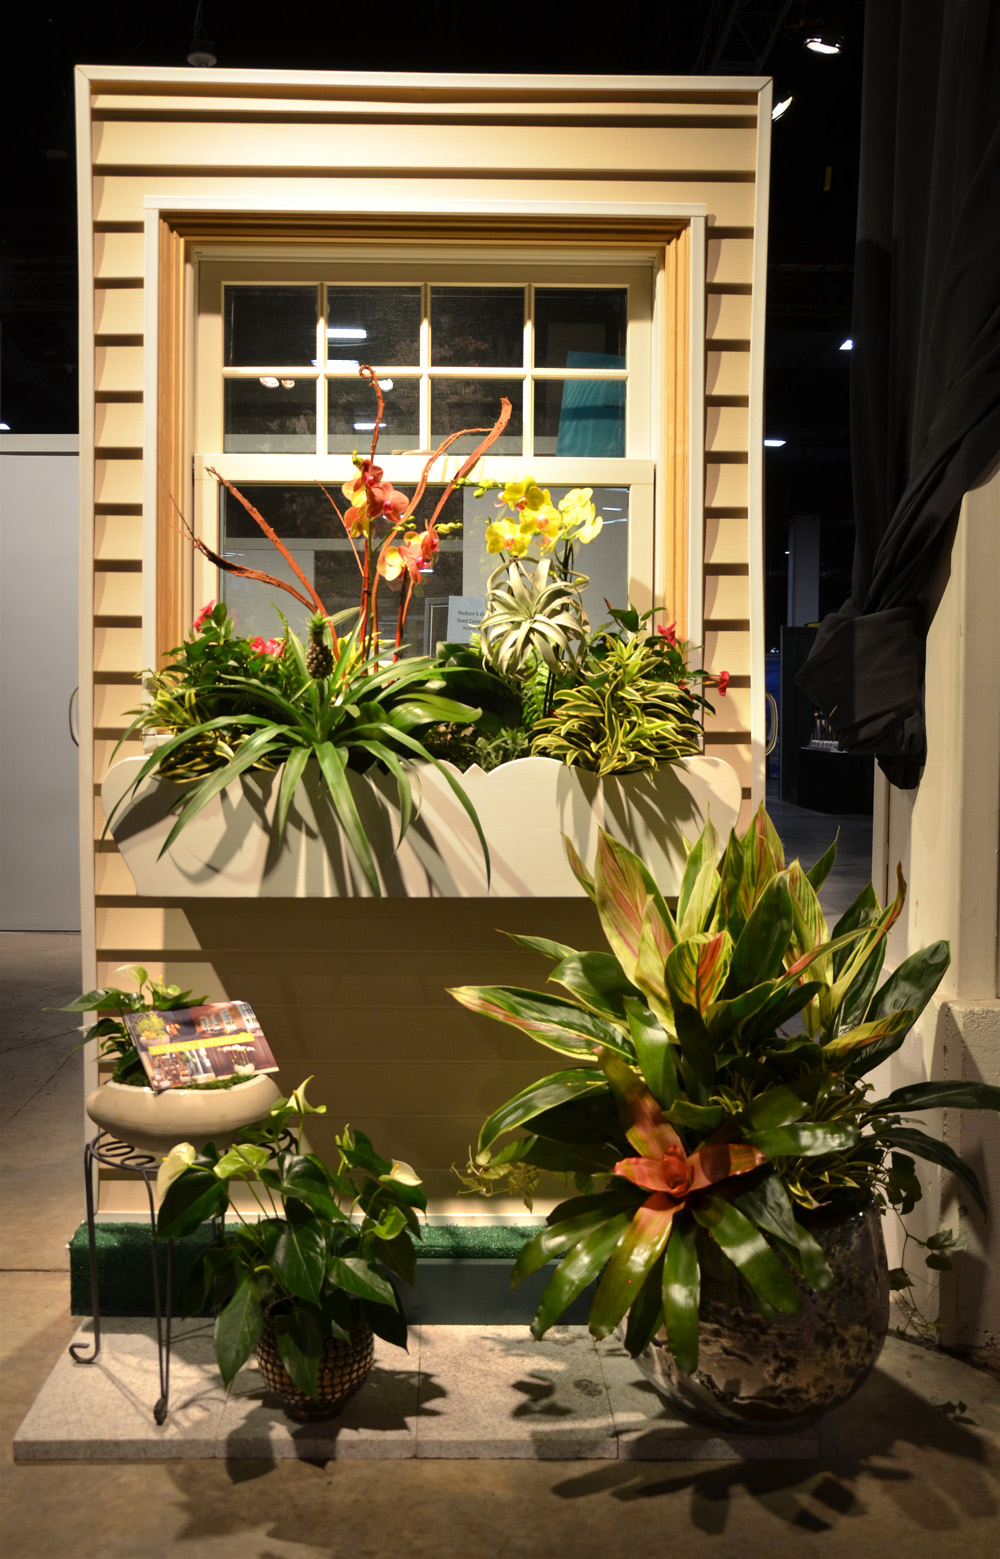 Our take on a window box, it's very tropical: what do you think?!